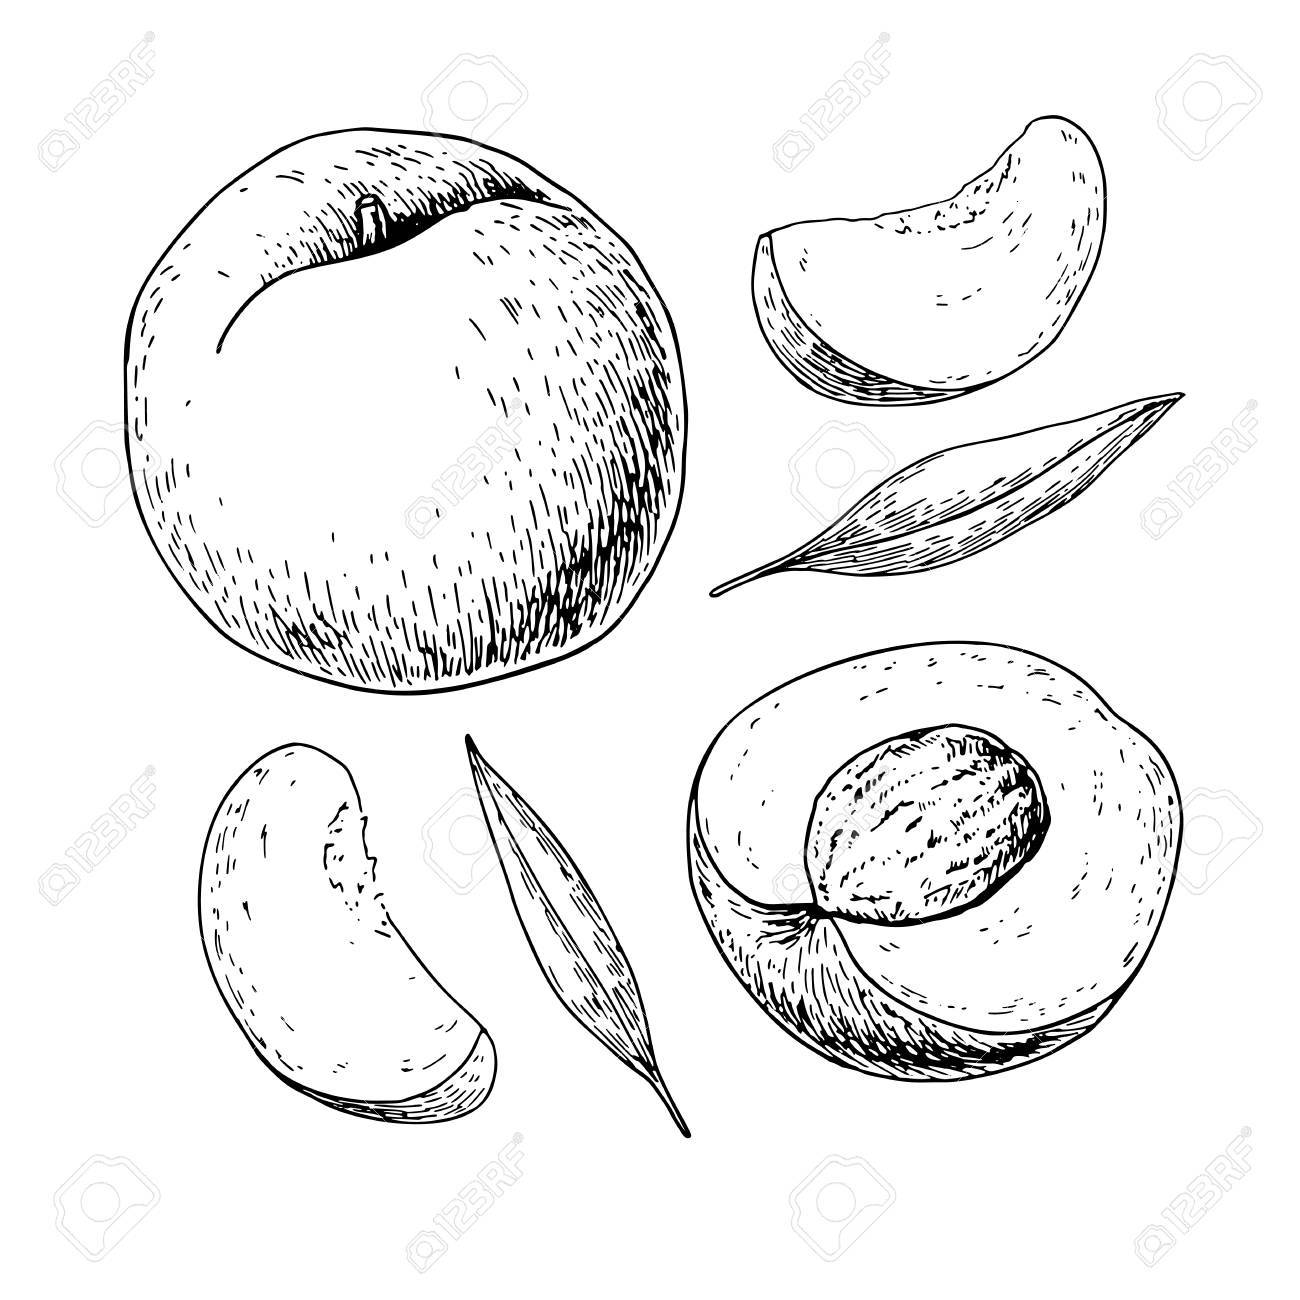 1300x1300 Peach Vector Drawing. Isolated Hand Drawn Full And Sliced Pieces